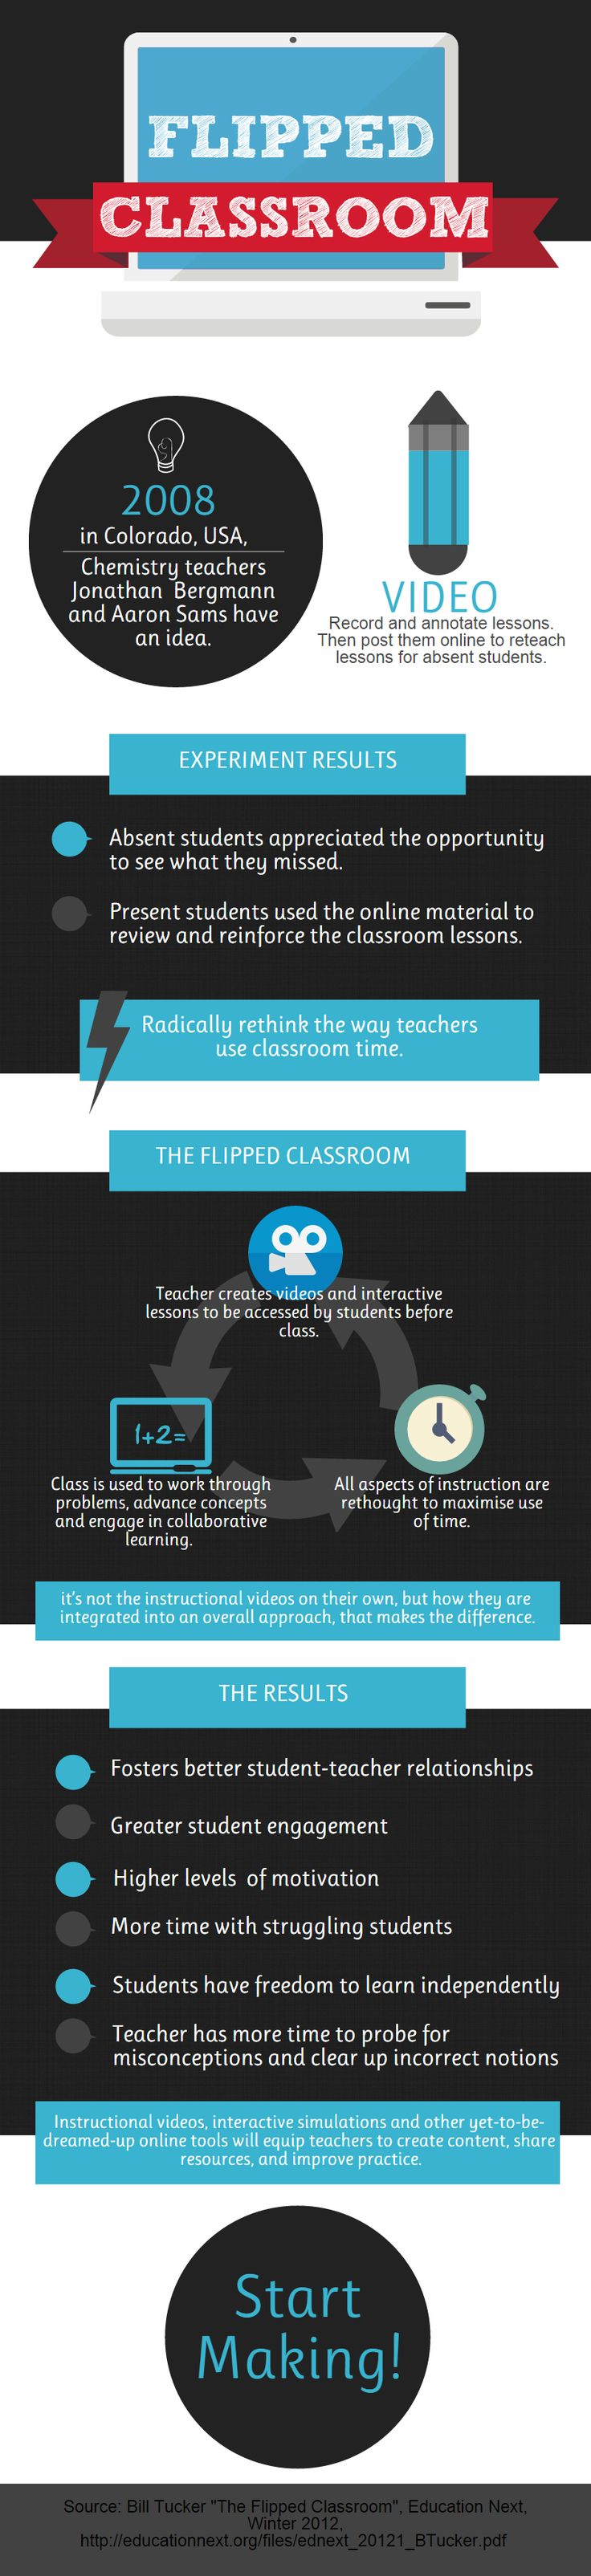 The How a Flipped Classroom Works Infographic enables teachers to rethink how classroom time can be used.